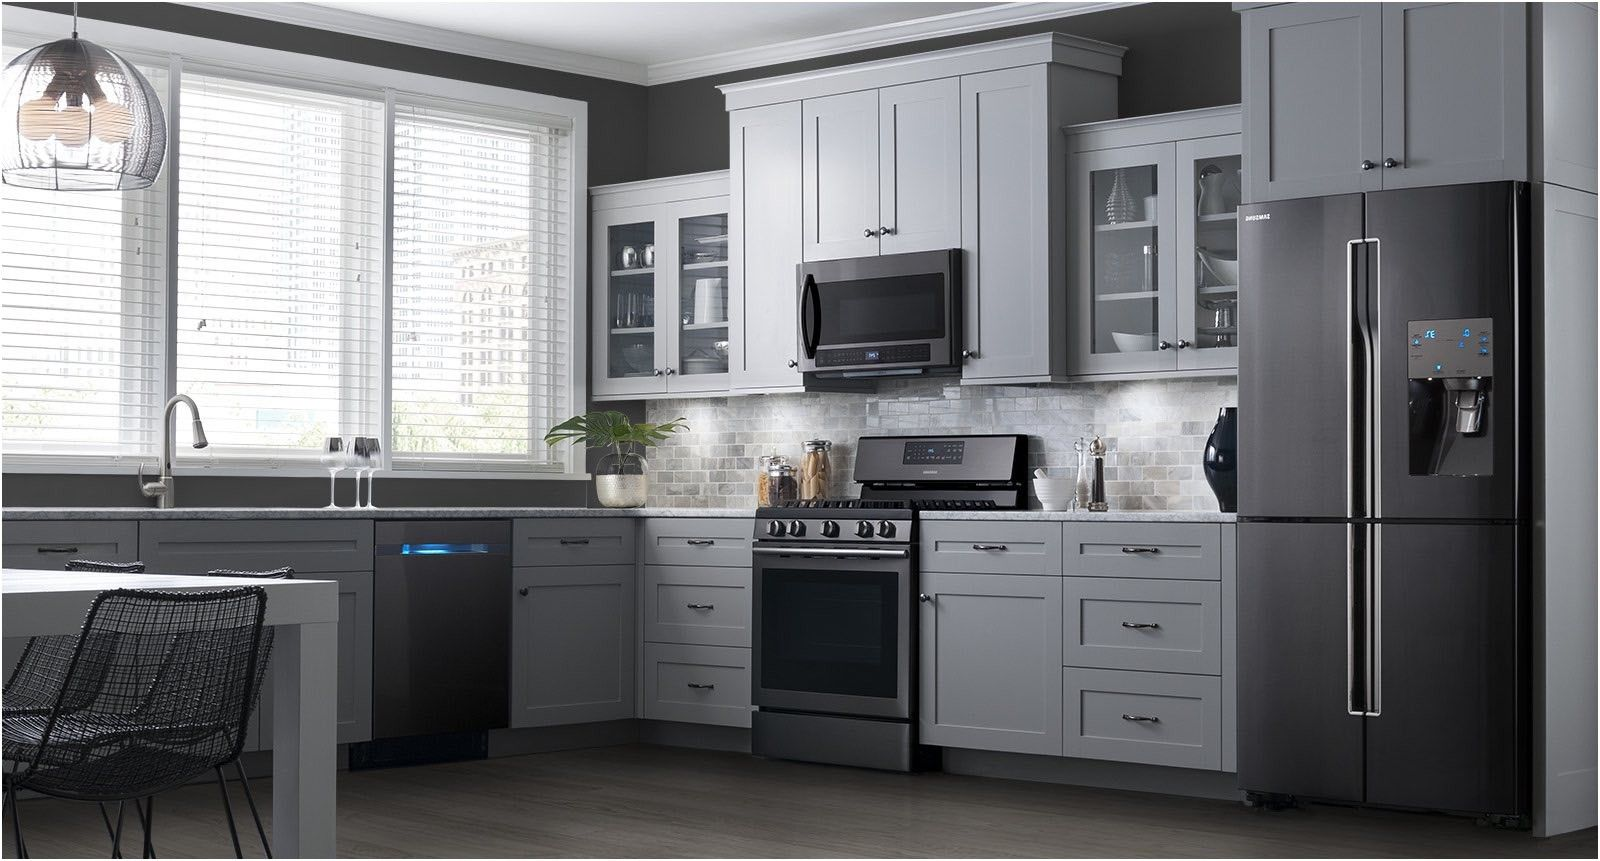 kitchenaid vs samsung black stainless steel appliances ...